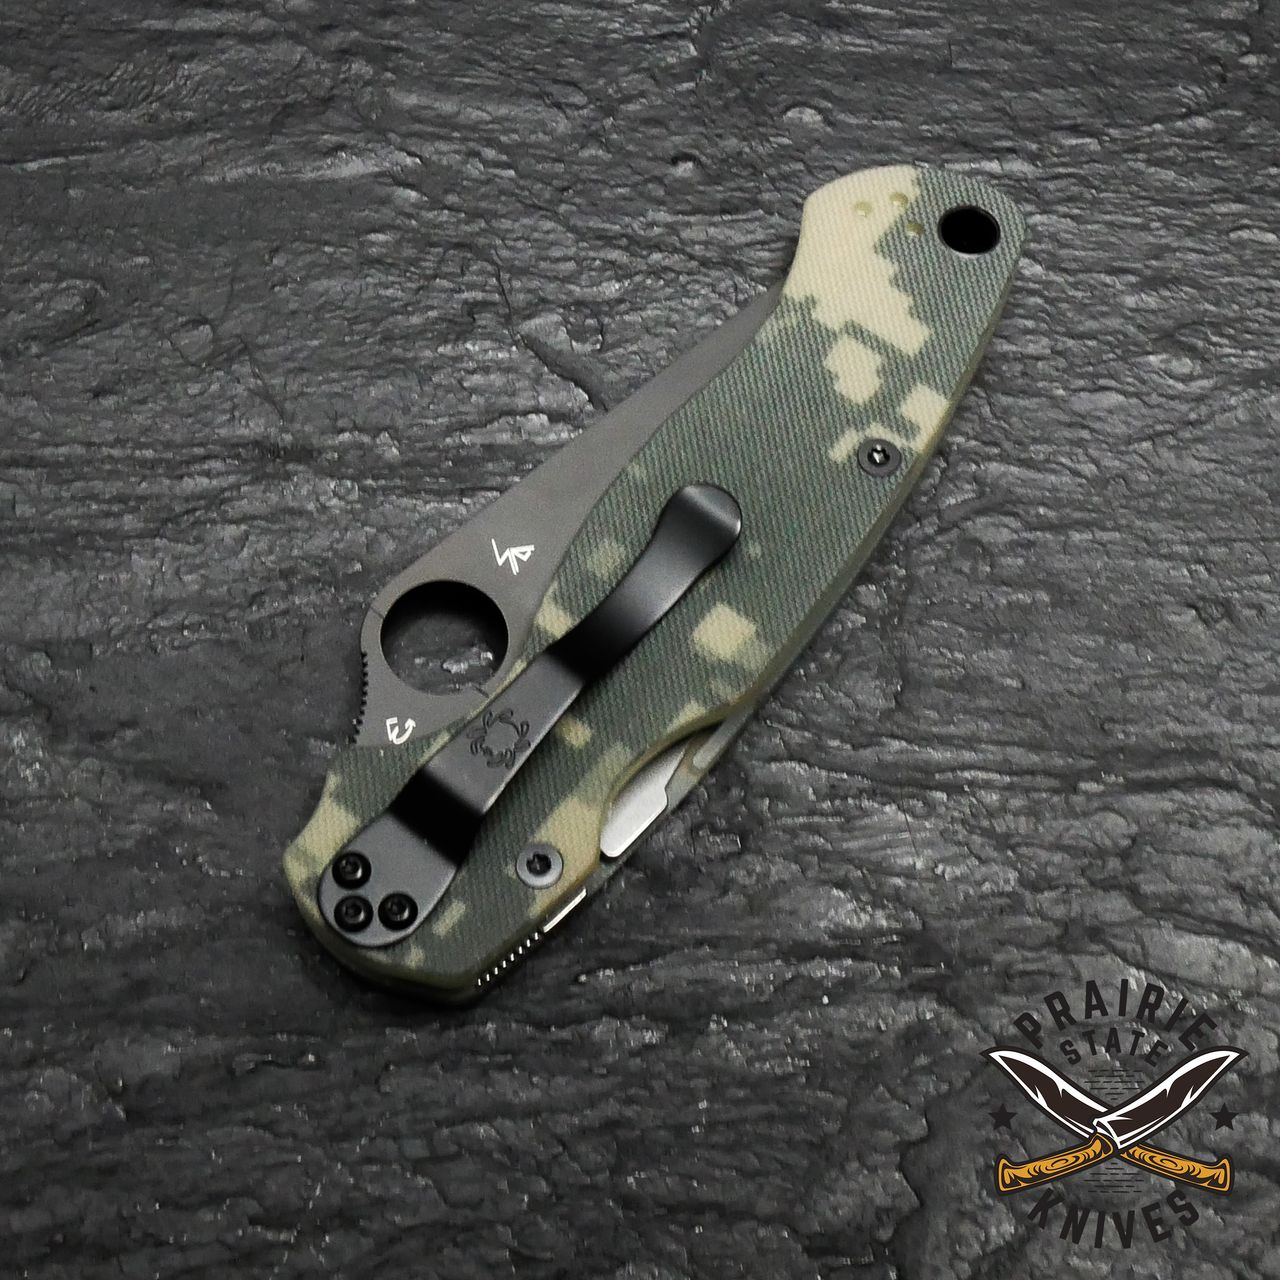 Spyderco Paramilitary 2 knife  features a Compression Lock® and an ambidextrous-friendly four way clip which carries tip-up/tip-down, left/right-hand that rests deep in a pocket.